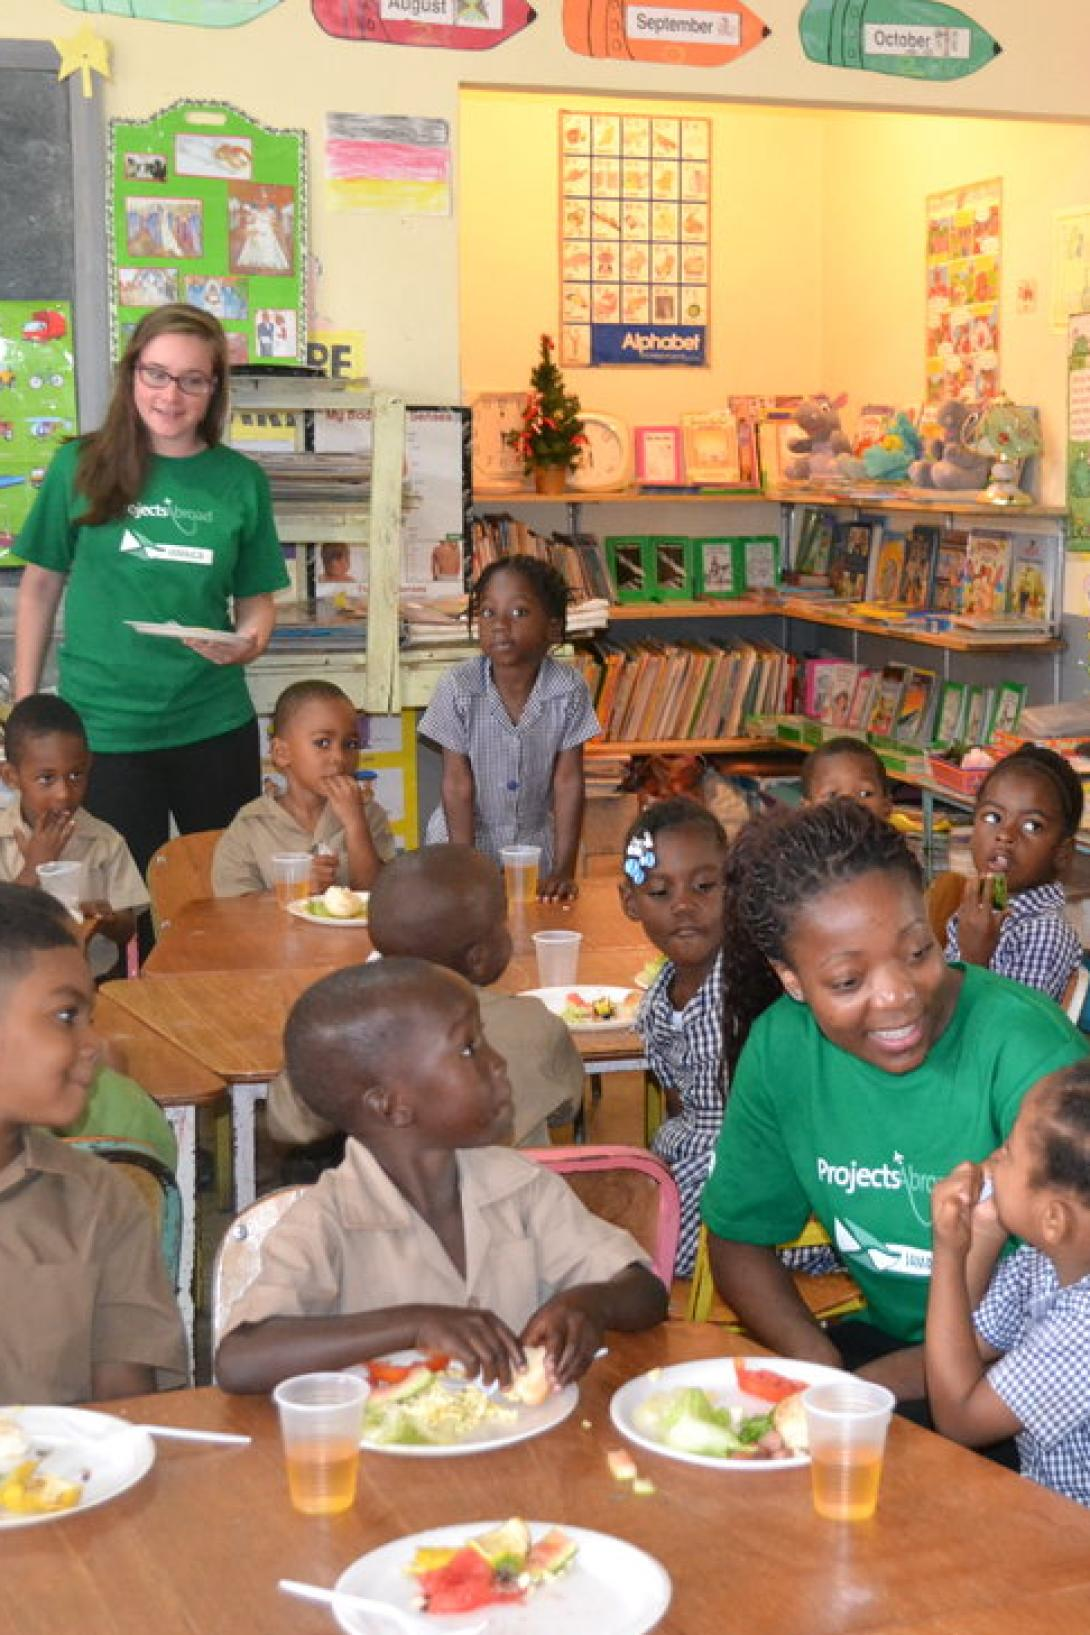 A group of Childcare volunteers in Jamaica prepare a healthy breakfast for children at a disadvantaged school.